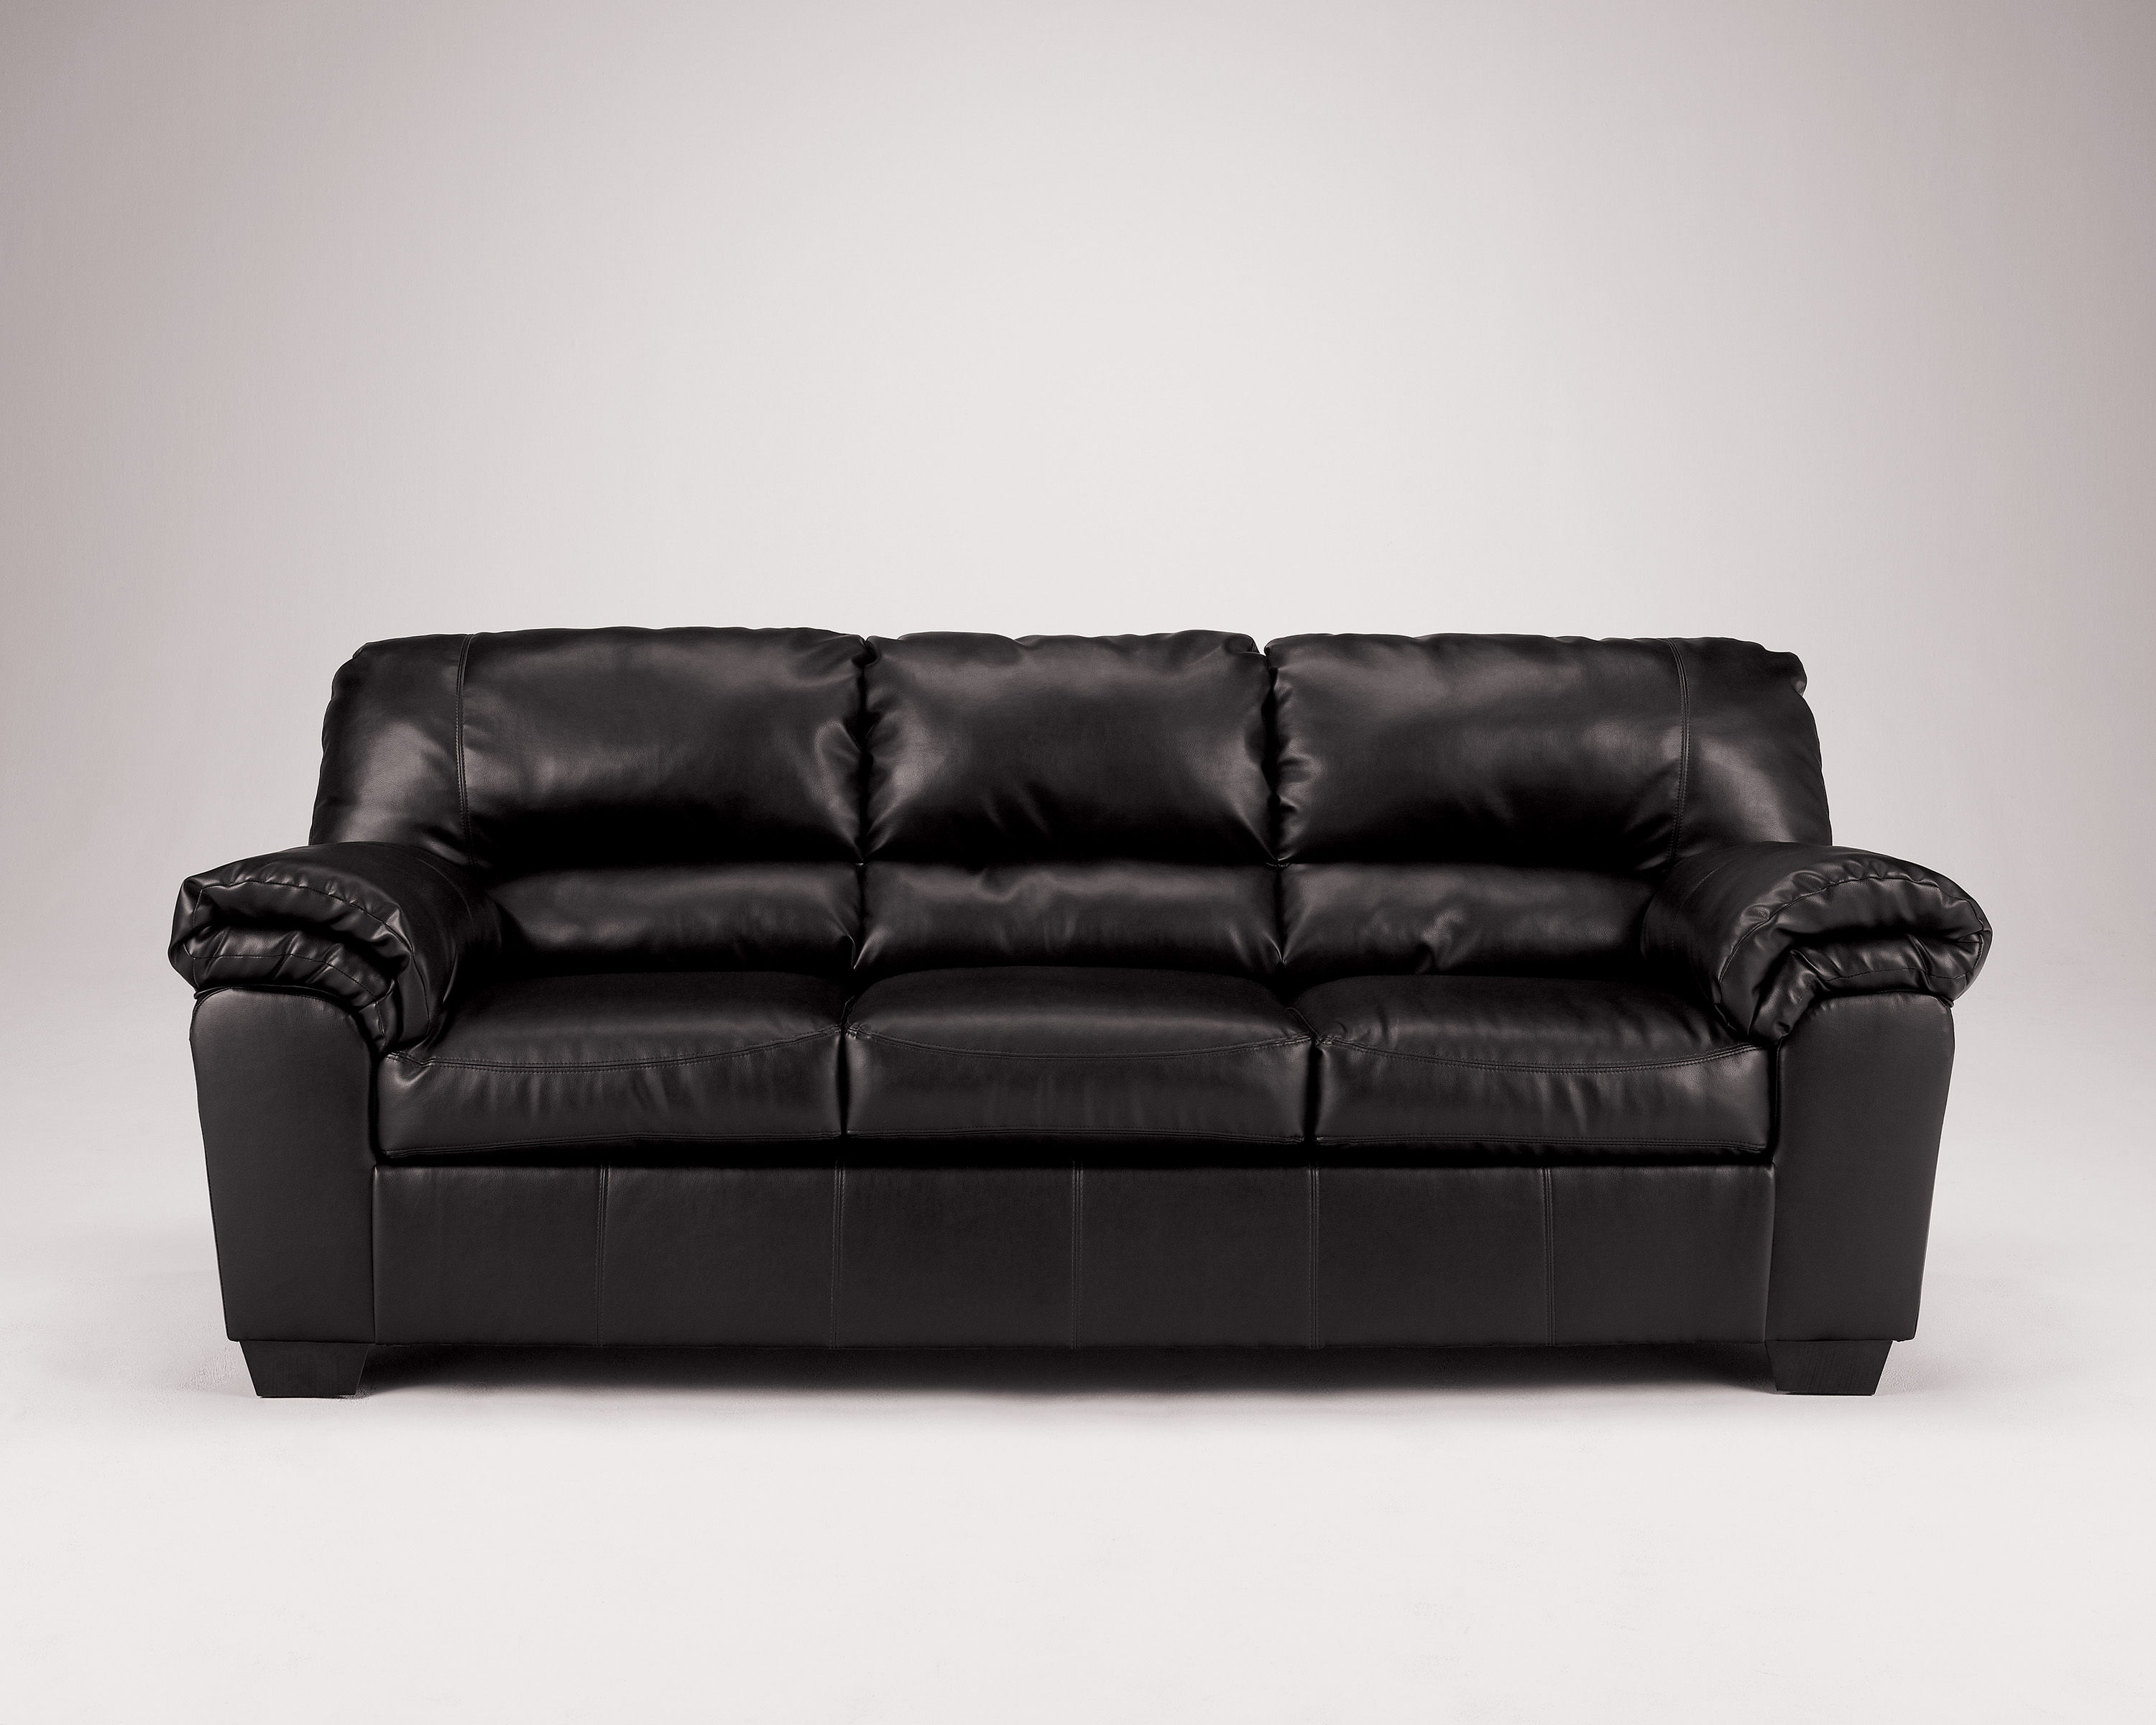 Commando Contemporary Black Faux Leather Sofa   Living Rooms   The ...